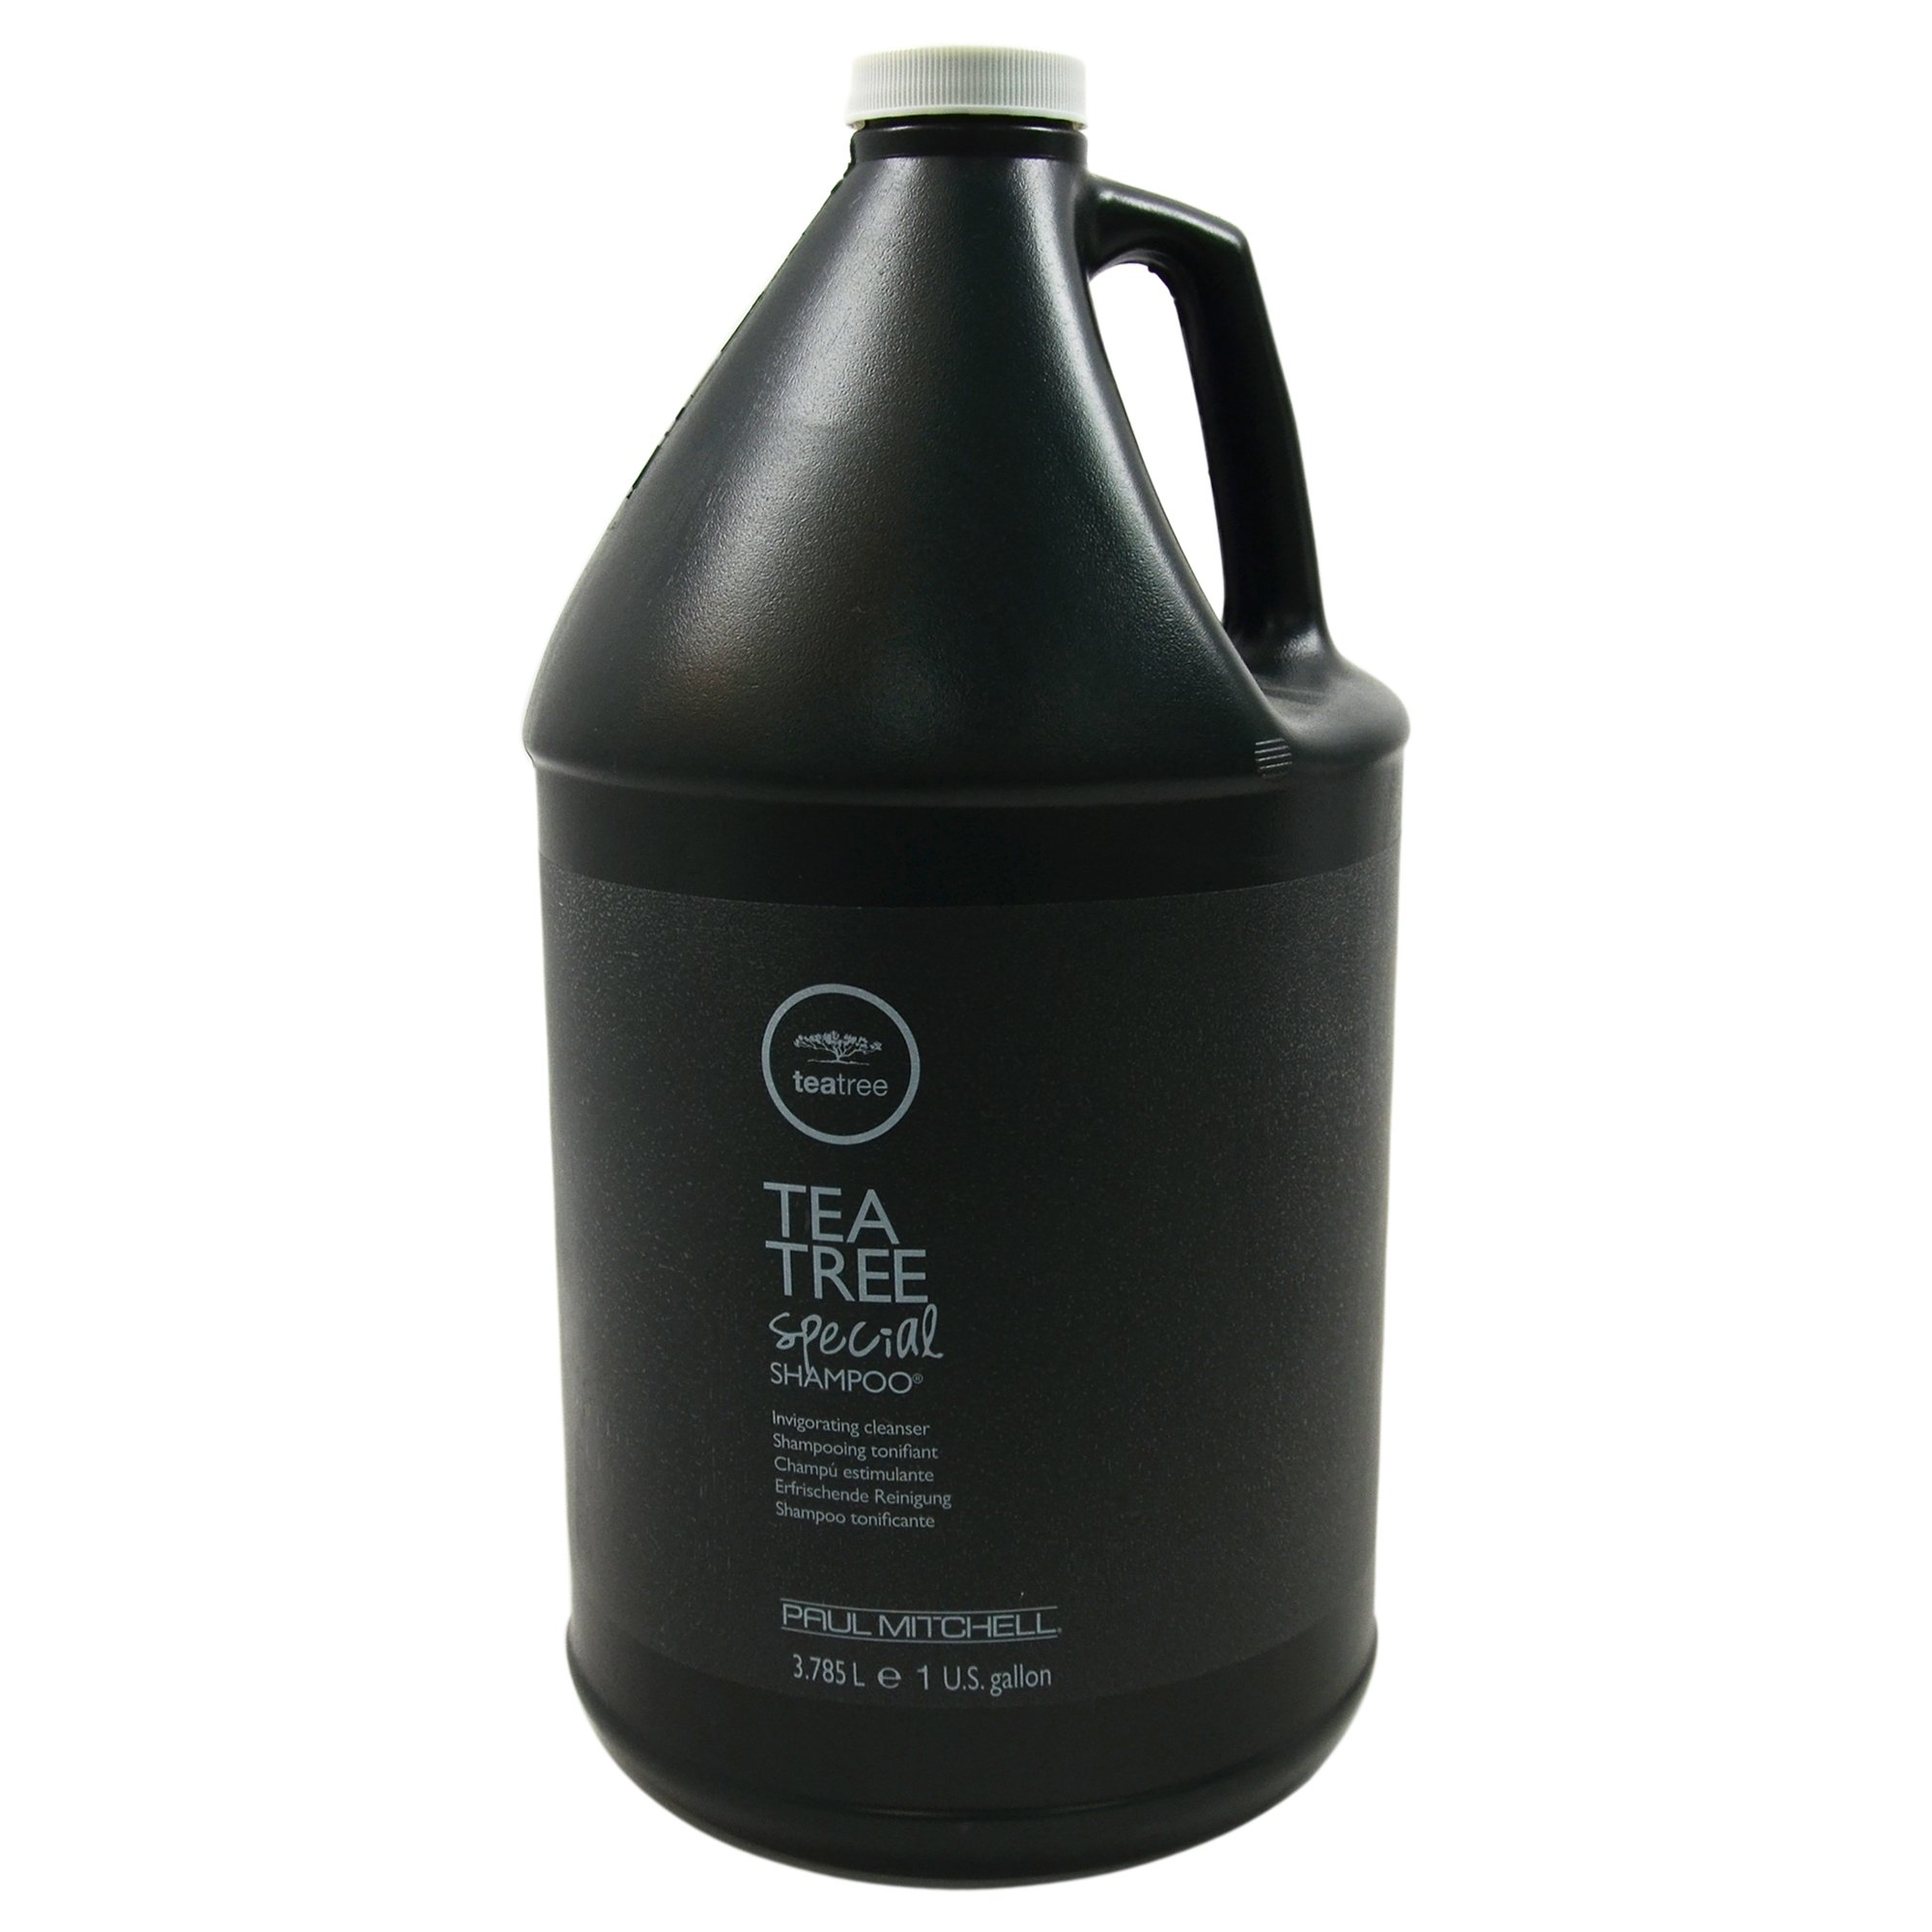 Tea Tree Special Shampoo 1 Gallon